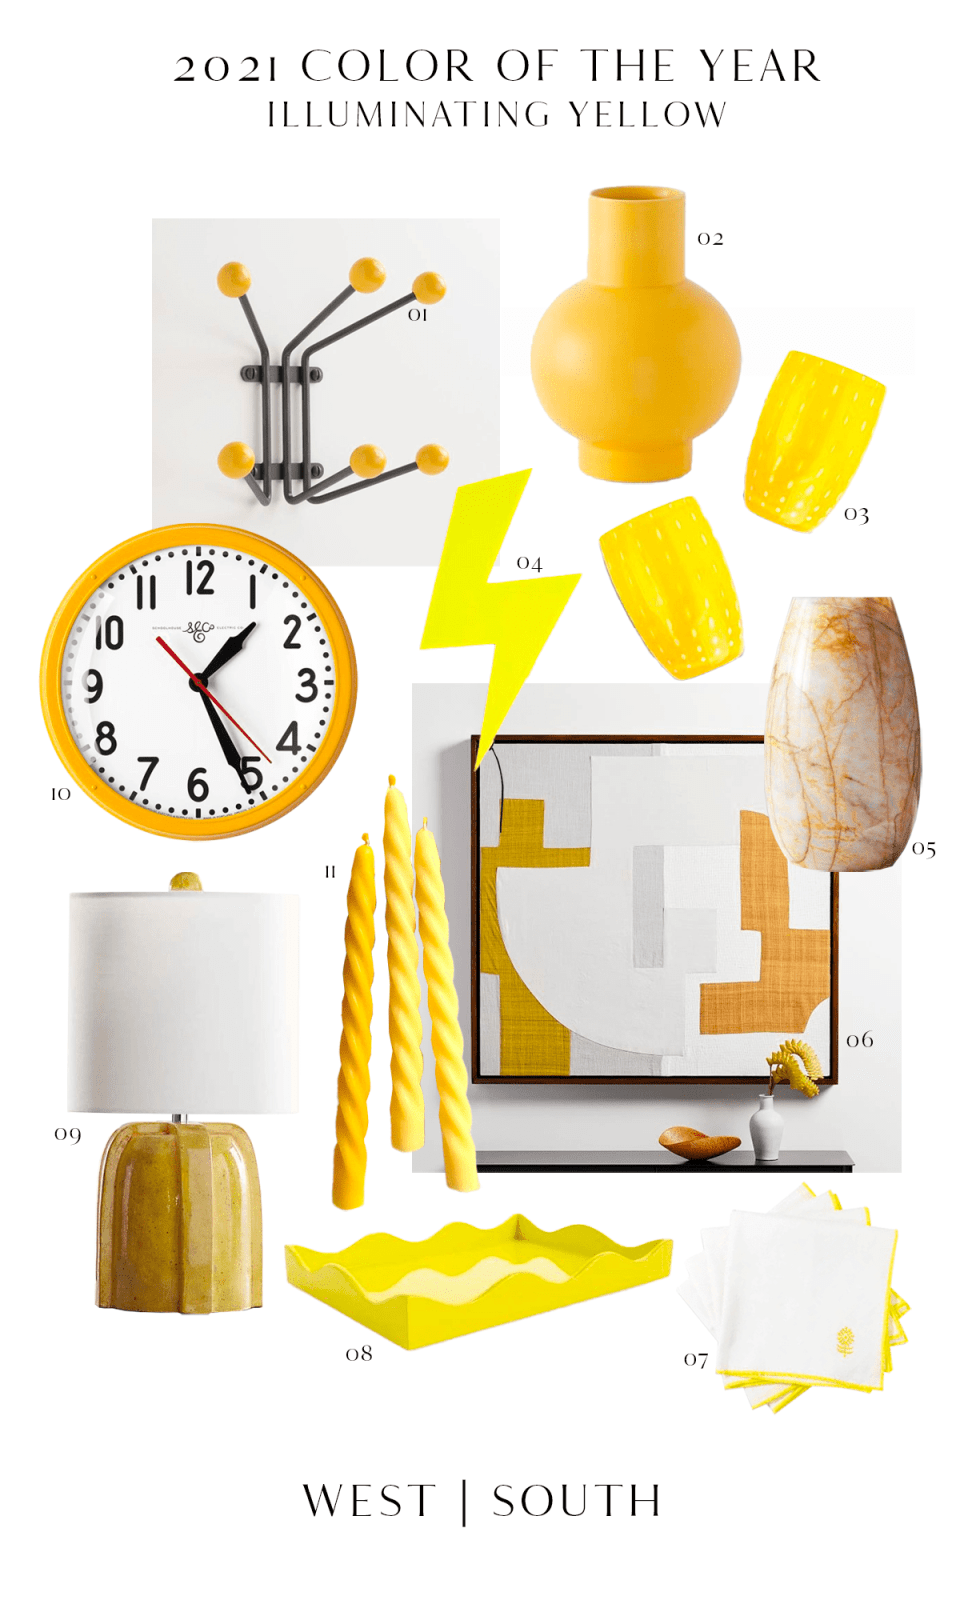 roundup image showing yellow home decor, lamps, art and tableware